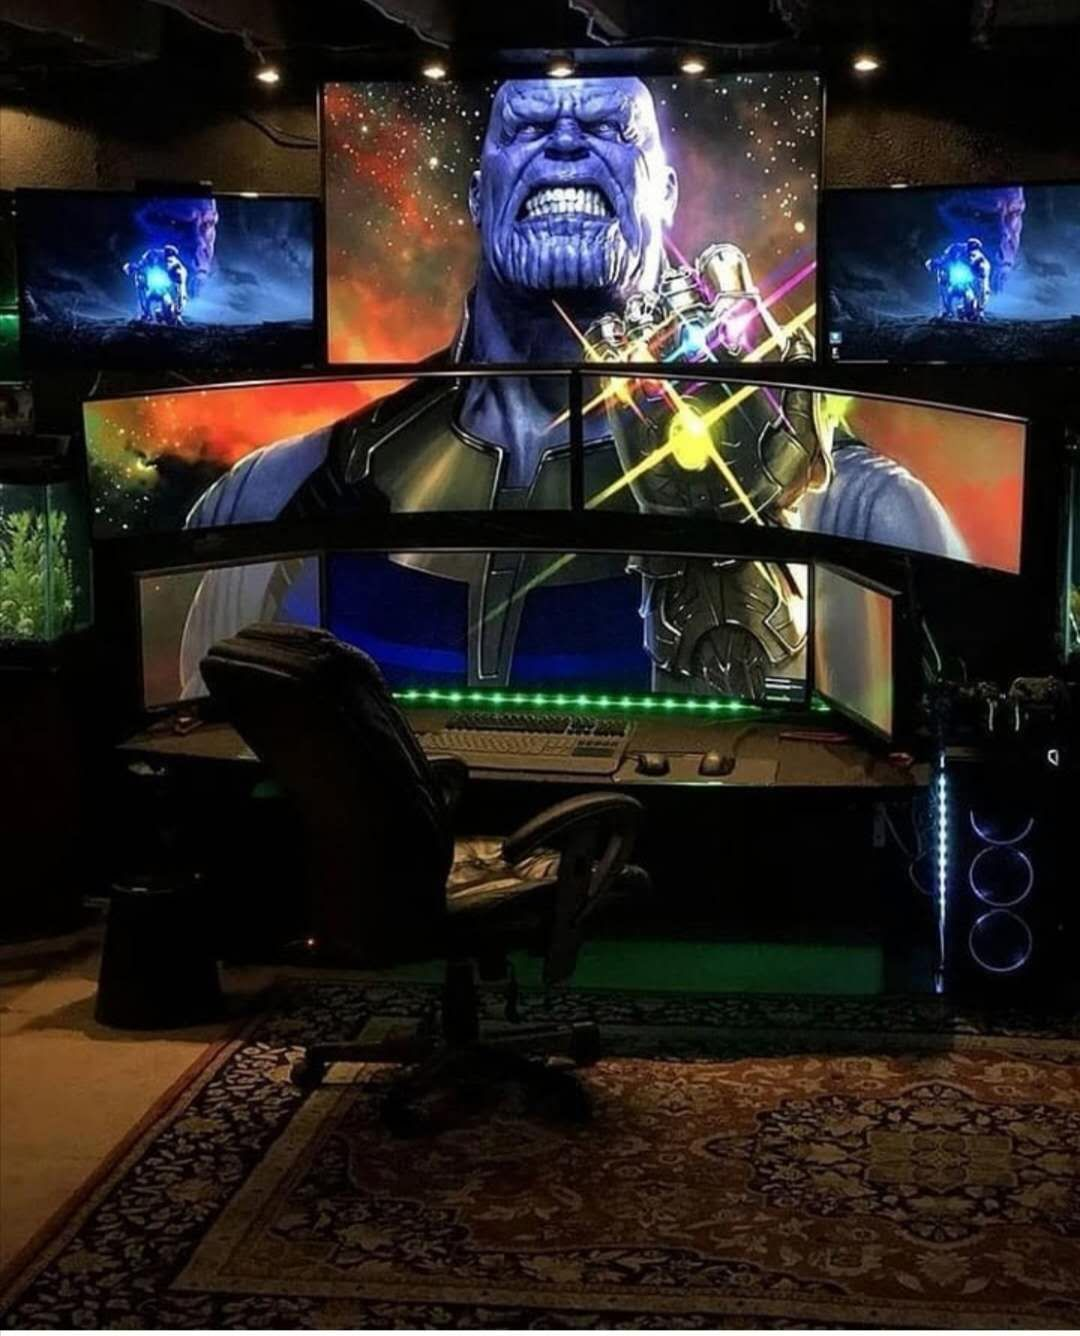 The Coolest Personal PC Setup Collection #gamingsetup